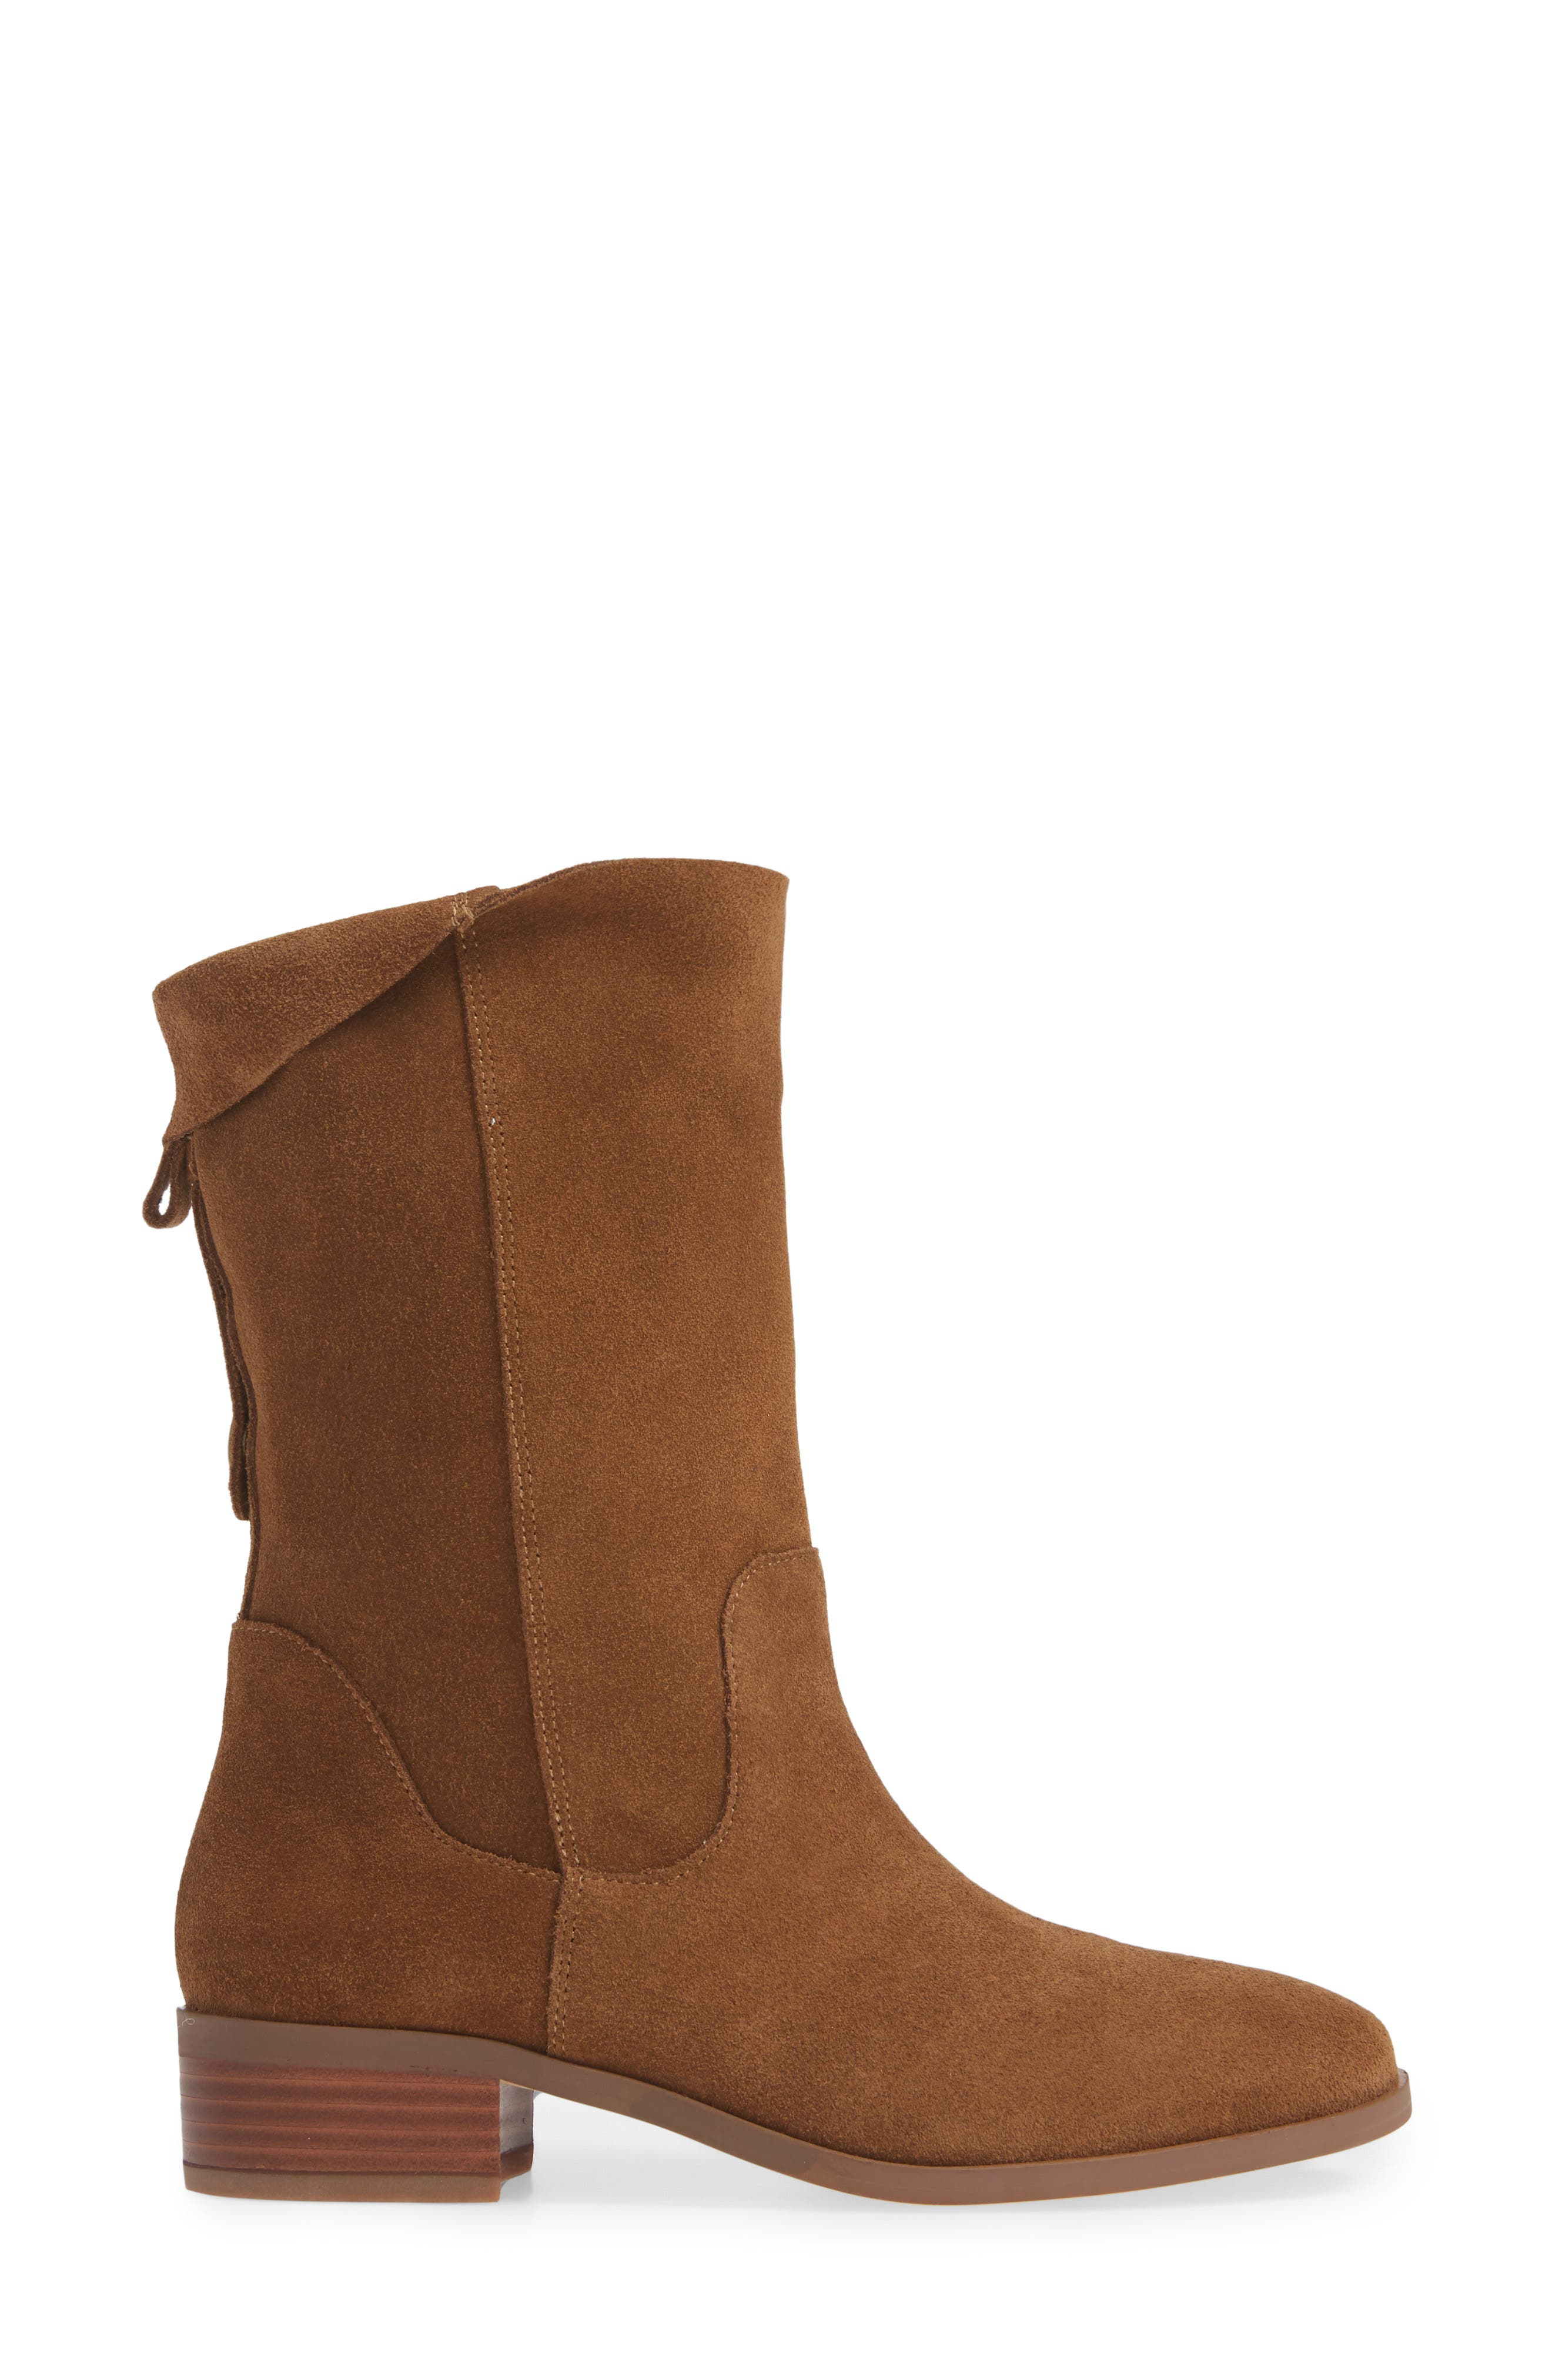 Calanth Bootie,                             Alternate thumbnail 3, color,                             TOBACCO SUEDE